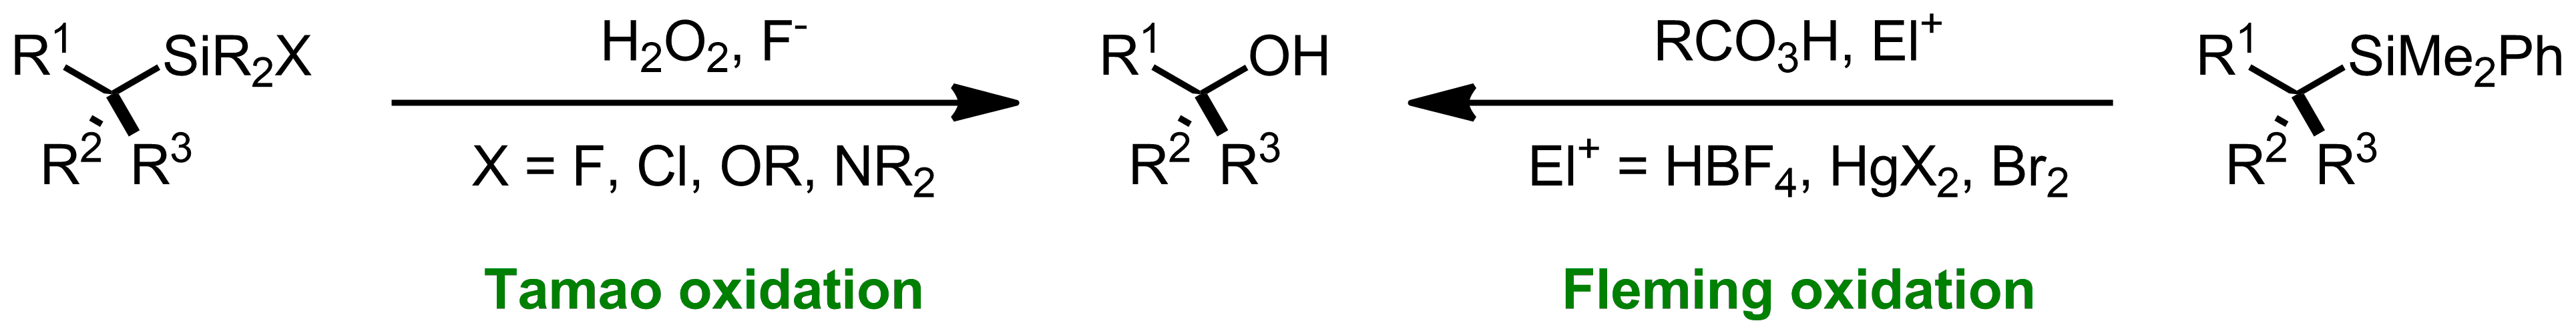 Schematic representation of the Fleming-Tamao Oxidation.